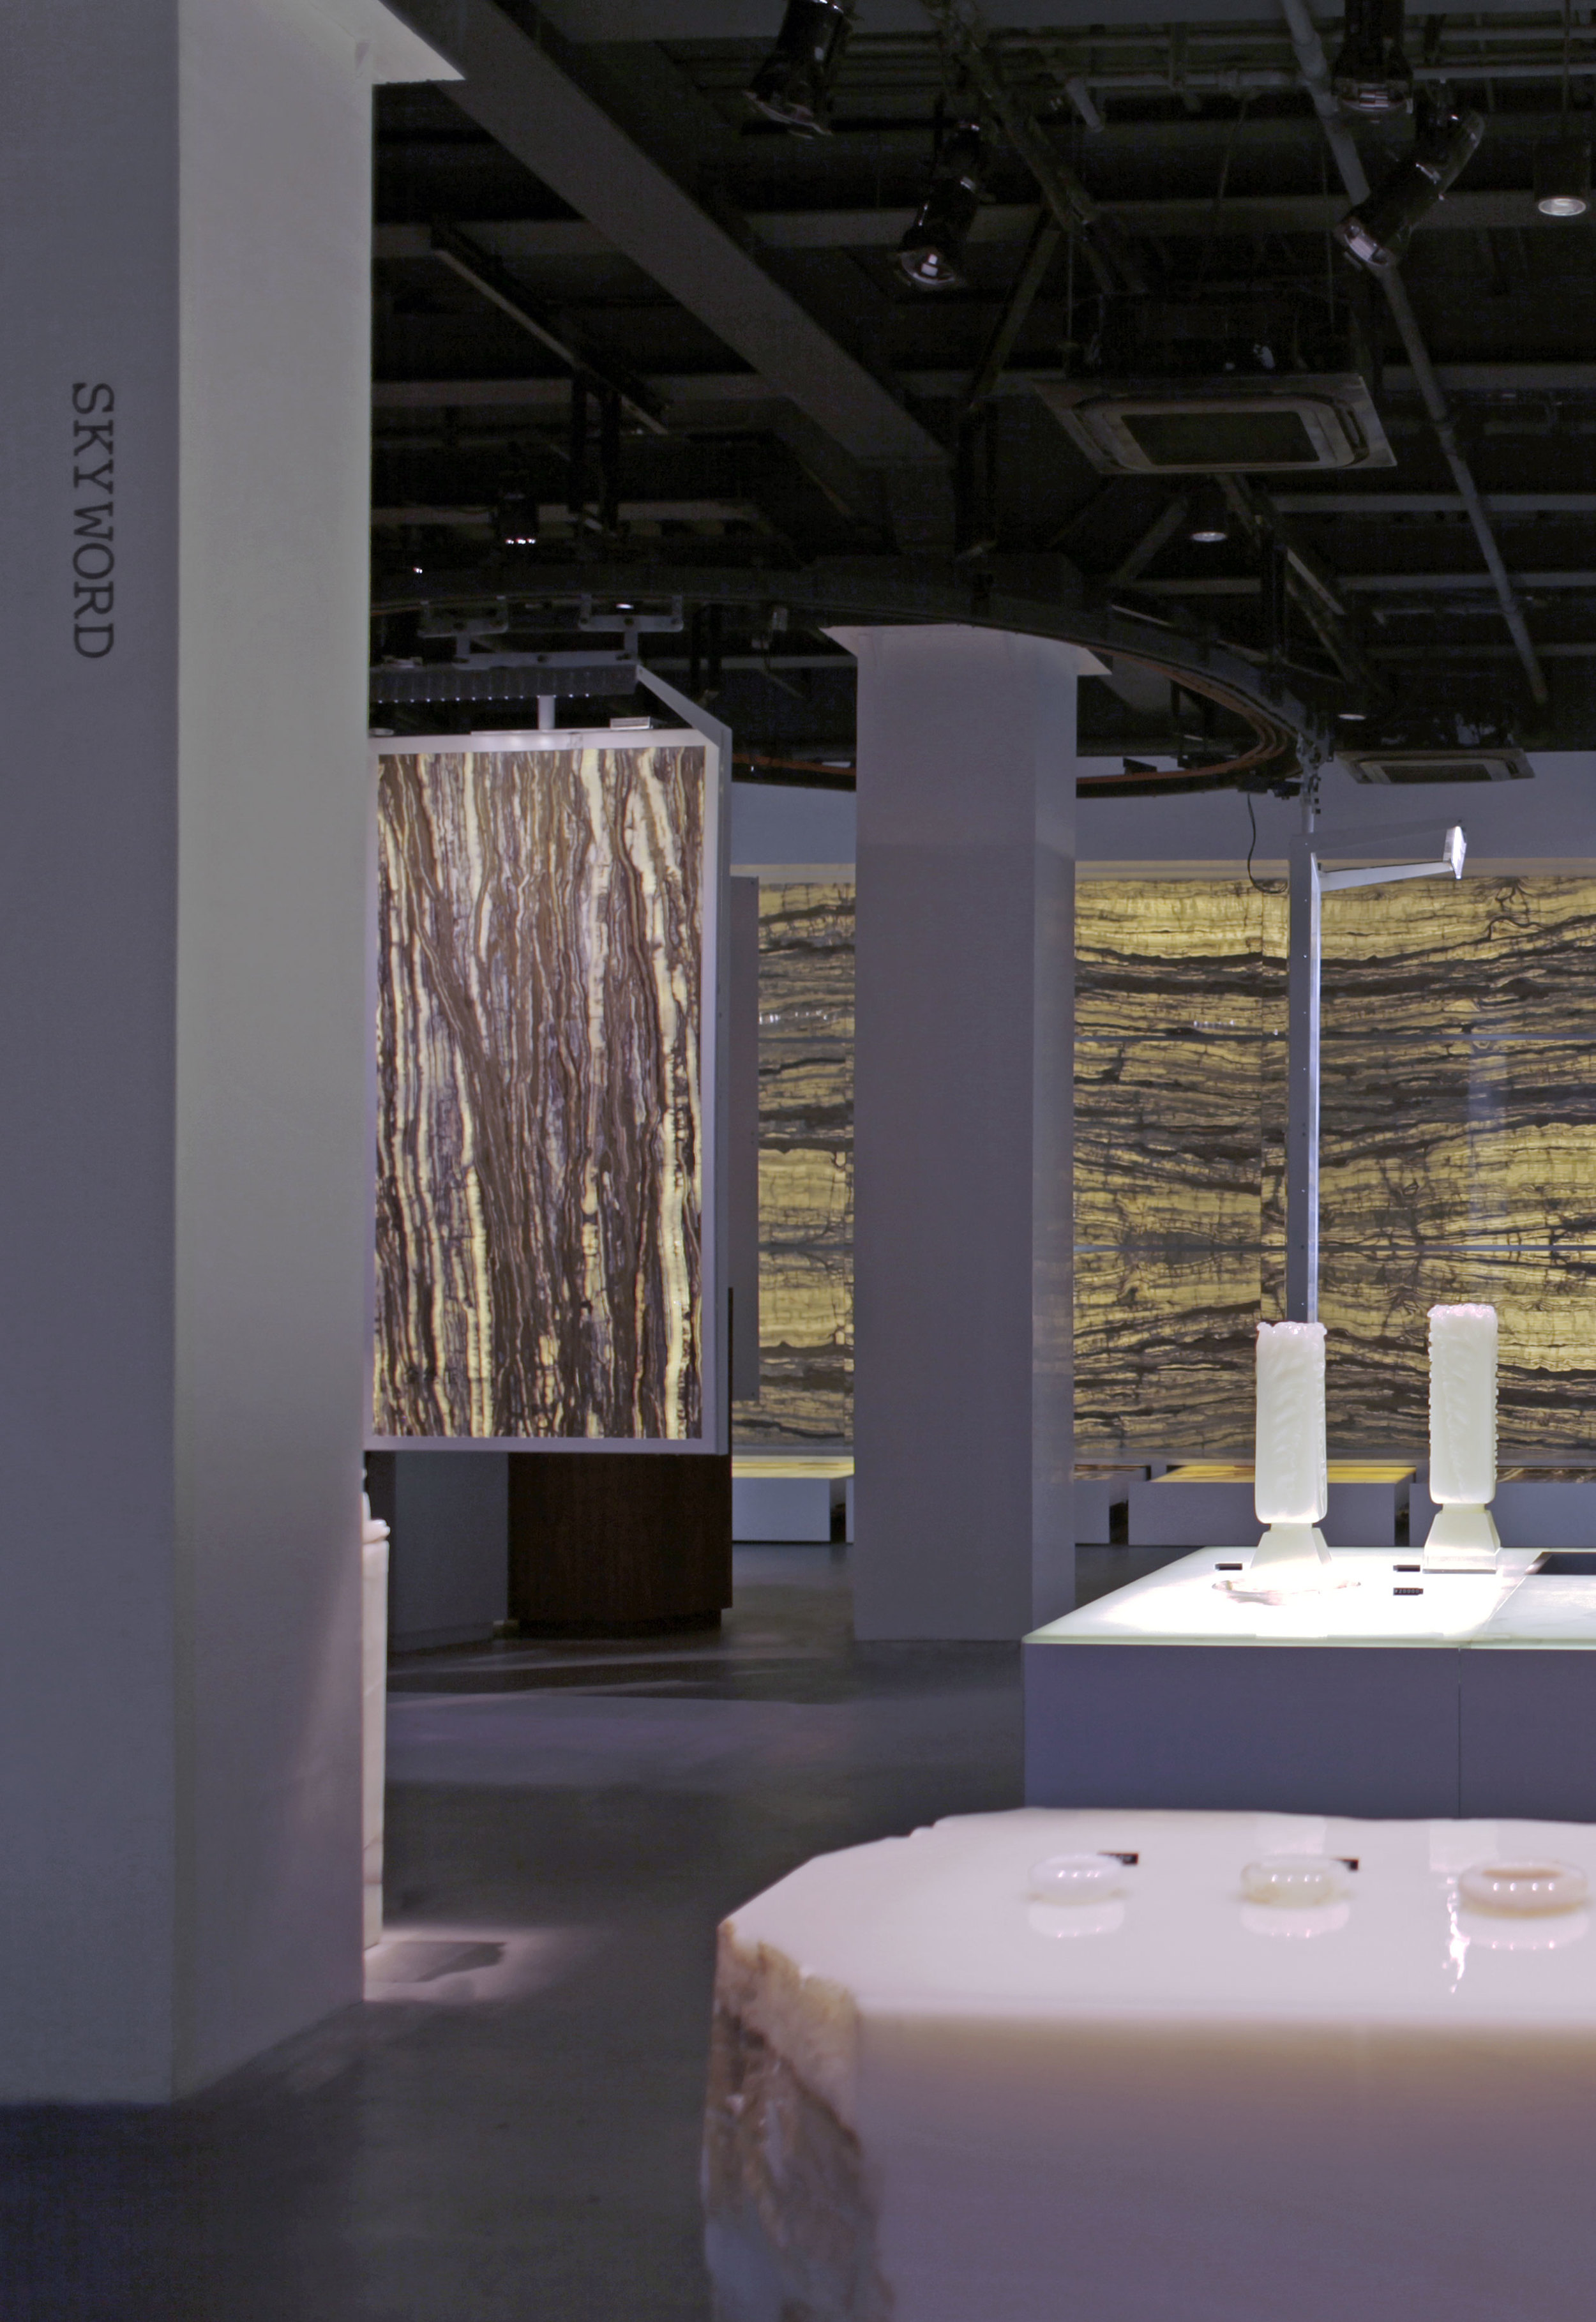 Illuminated onyx sculptures in the Skyword Showroom